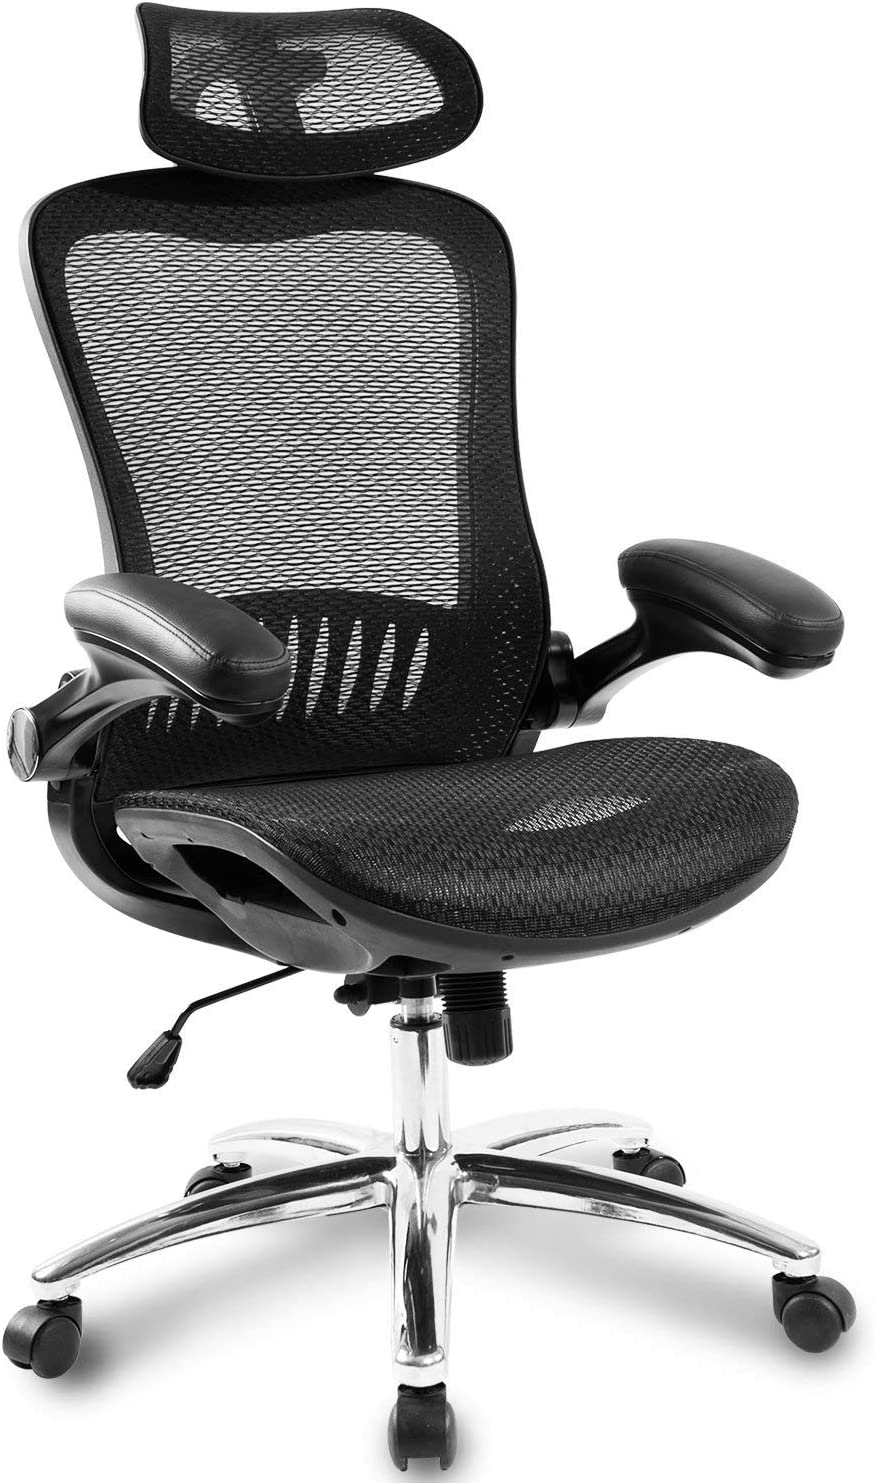 Racing Chair Office Computer Chair Ergonomic Gaming Chairs Home Office Desk Chair Lumbar Headrest Support (Dark Black)